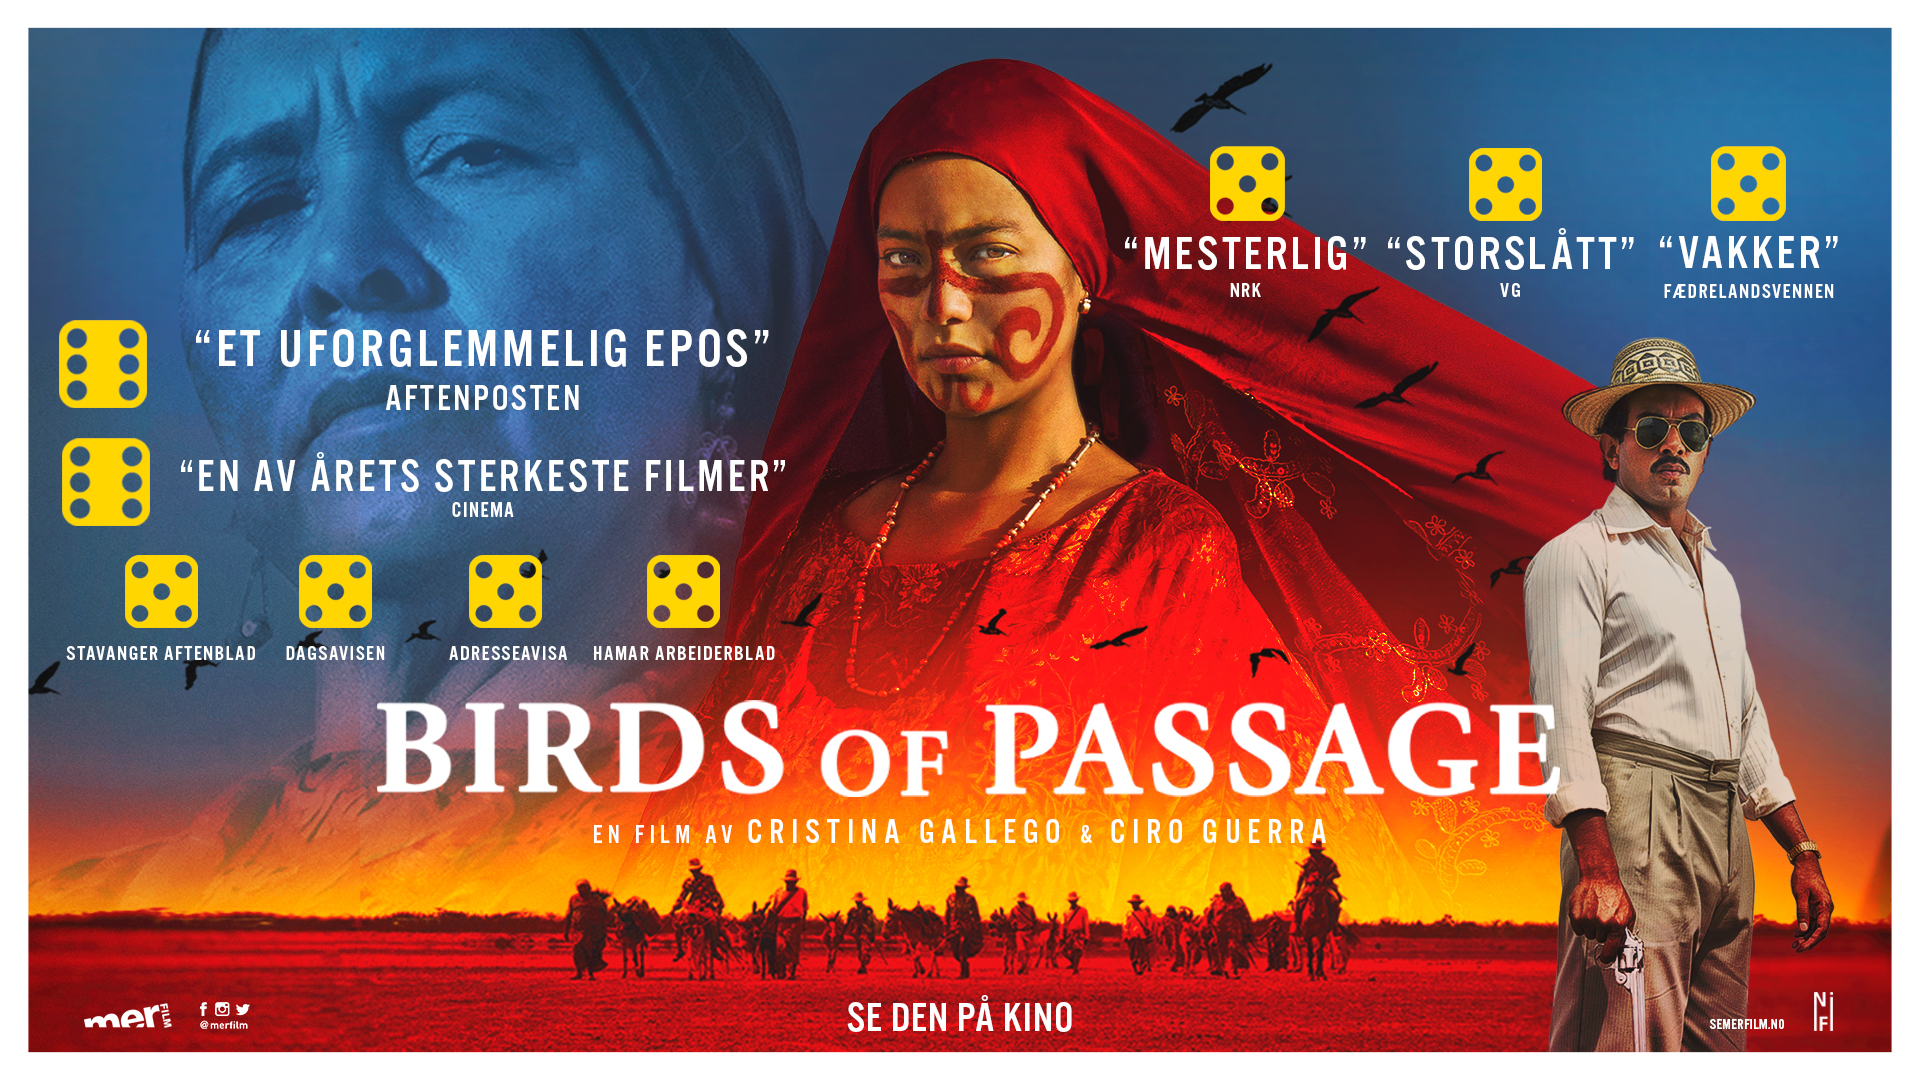 Birds of Passage - Liggende sitatplakat.jpg